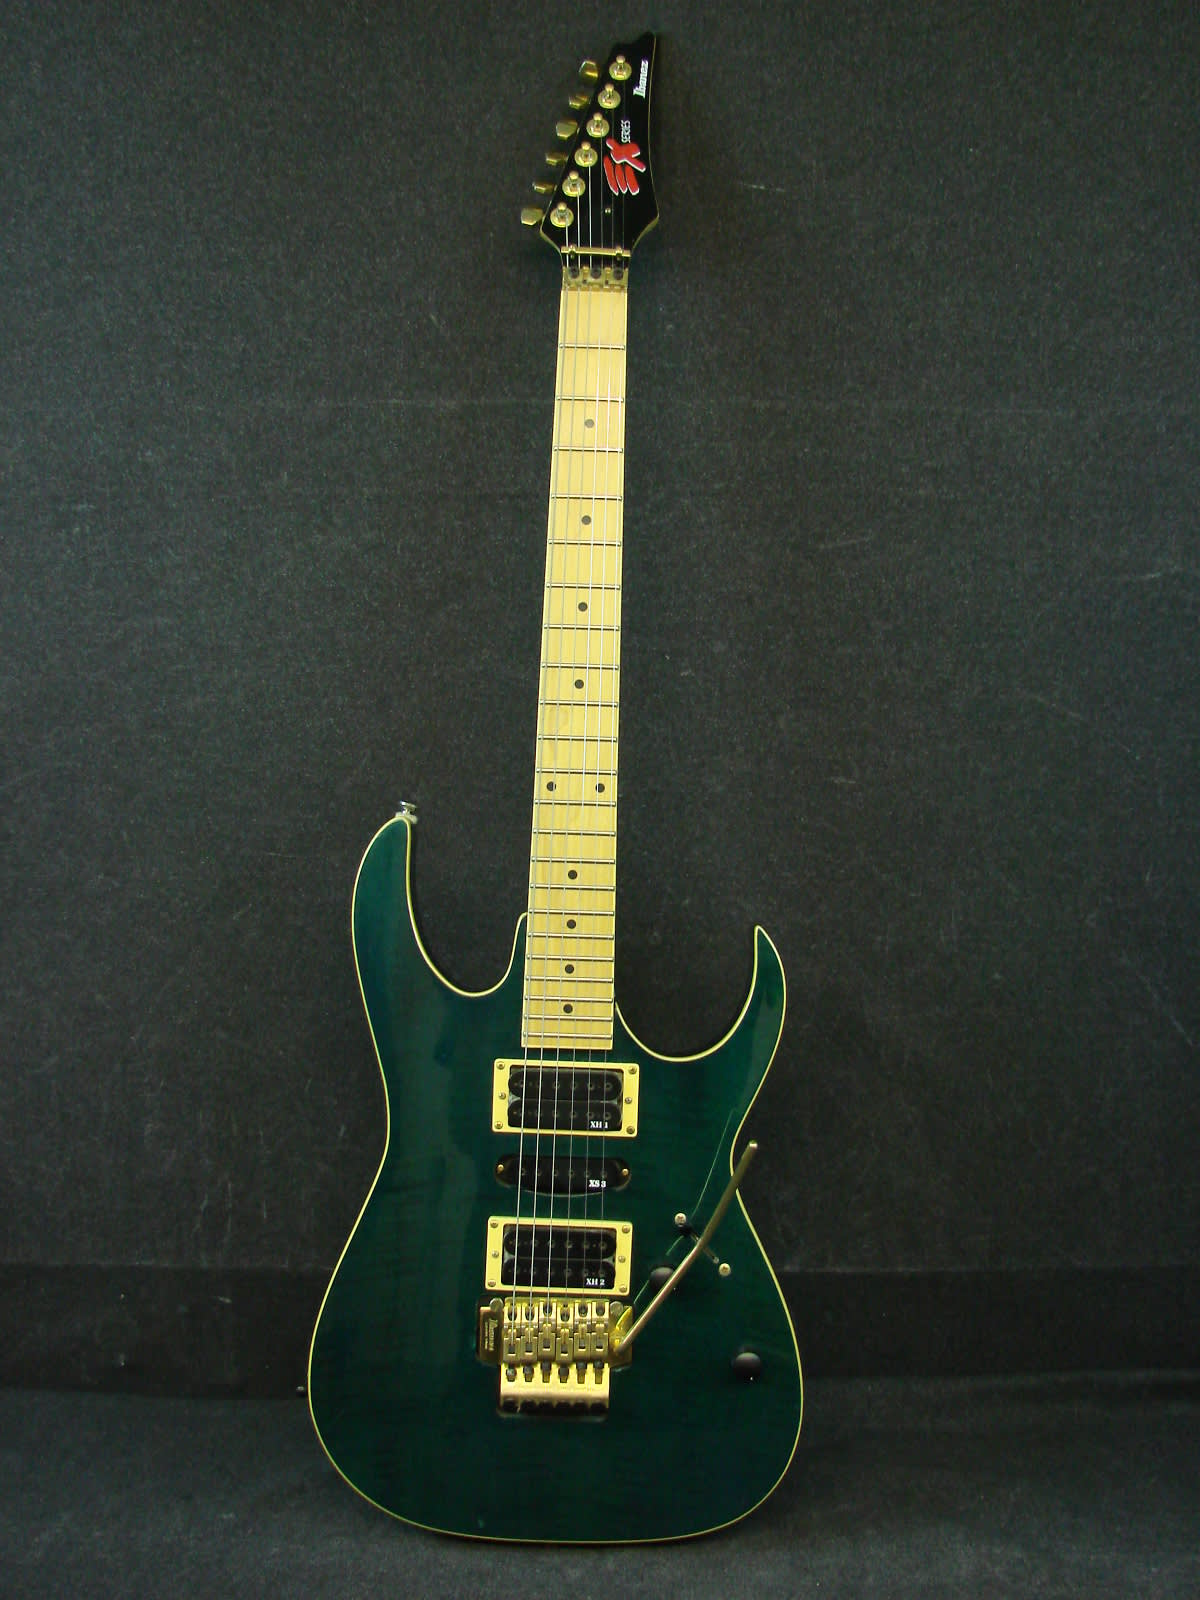 1992 Ibanez EX Series Green Electric Guitar w/Hard Case | Reverb